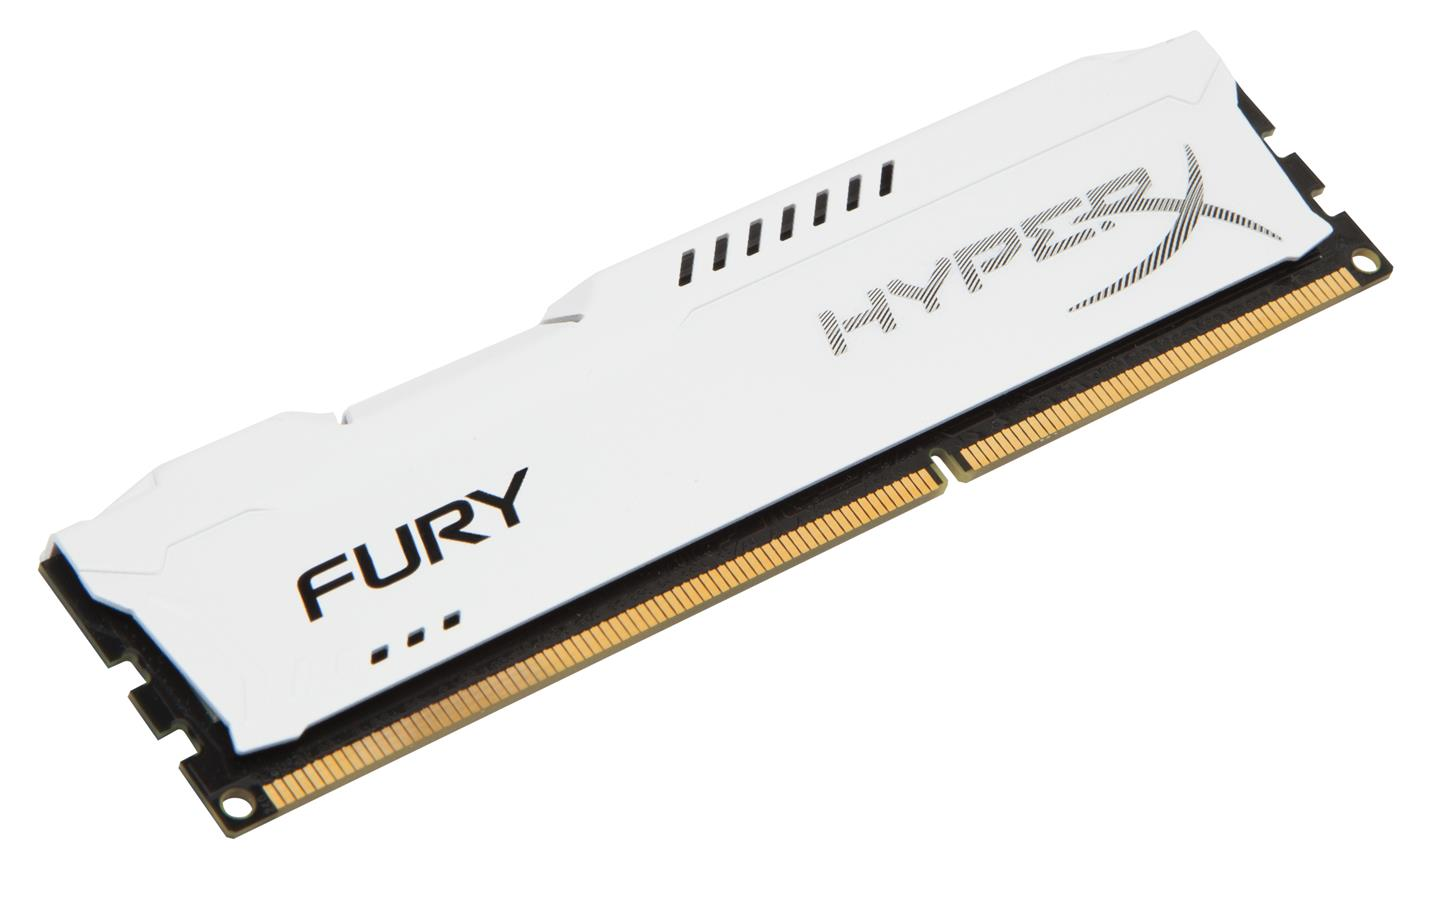 Kingston HyperX FURY 4GB 1866MHz DDR3 CL10 DIMM Gaming Ram